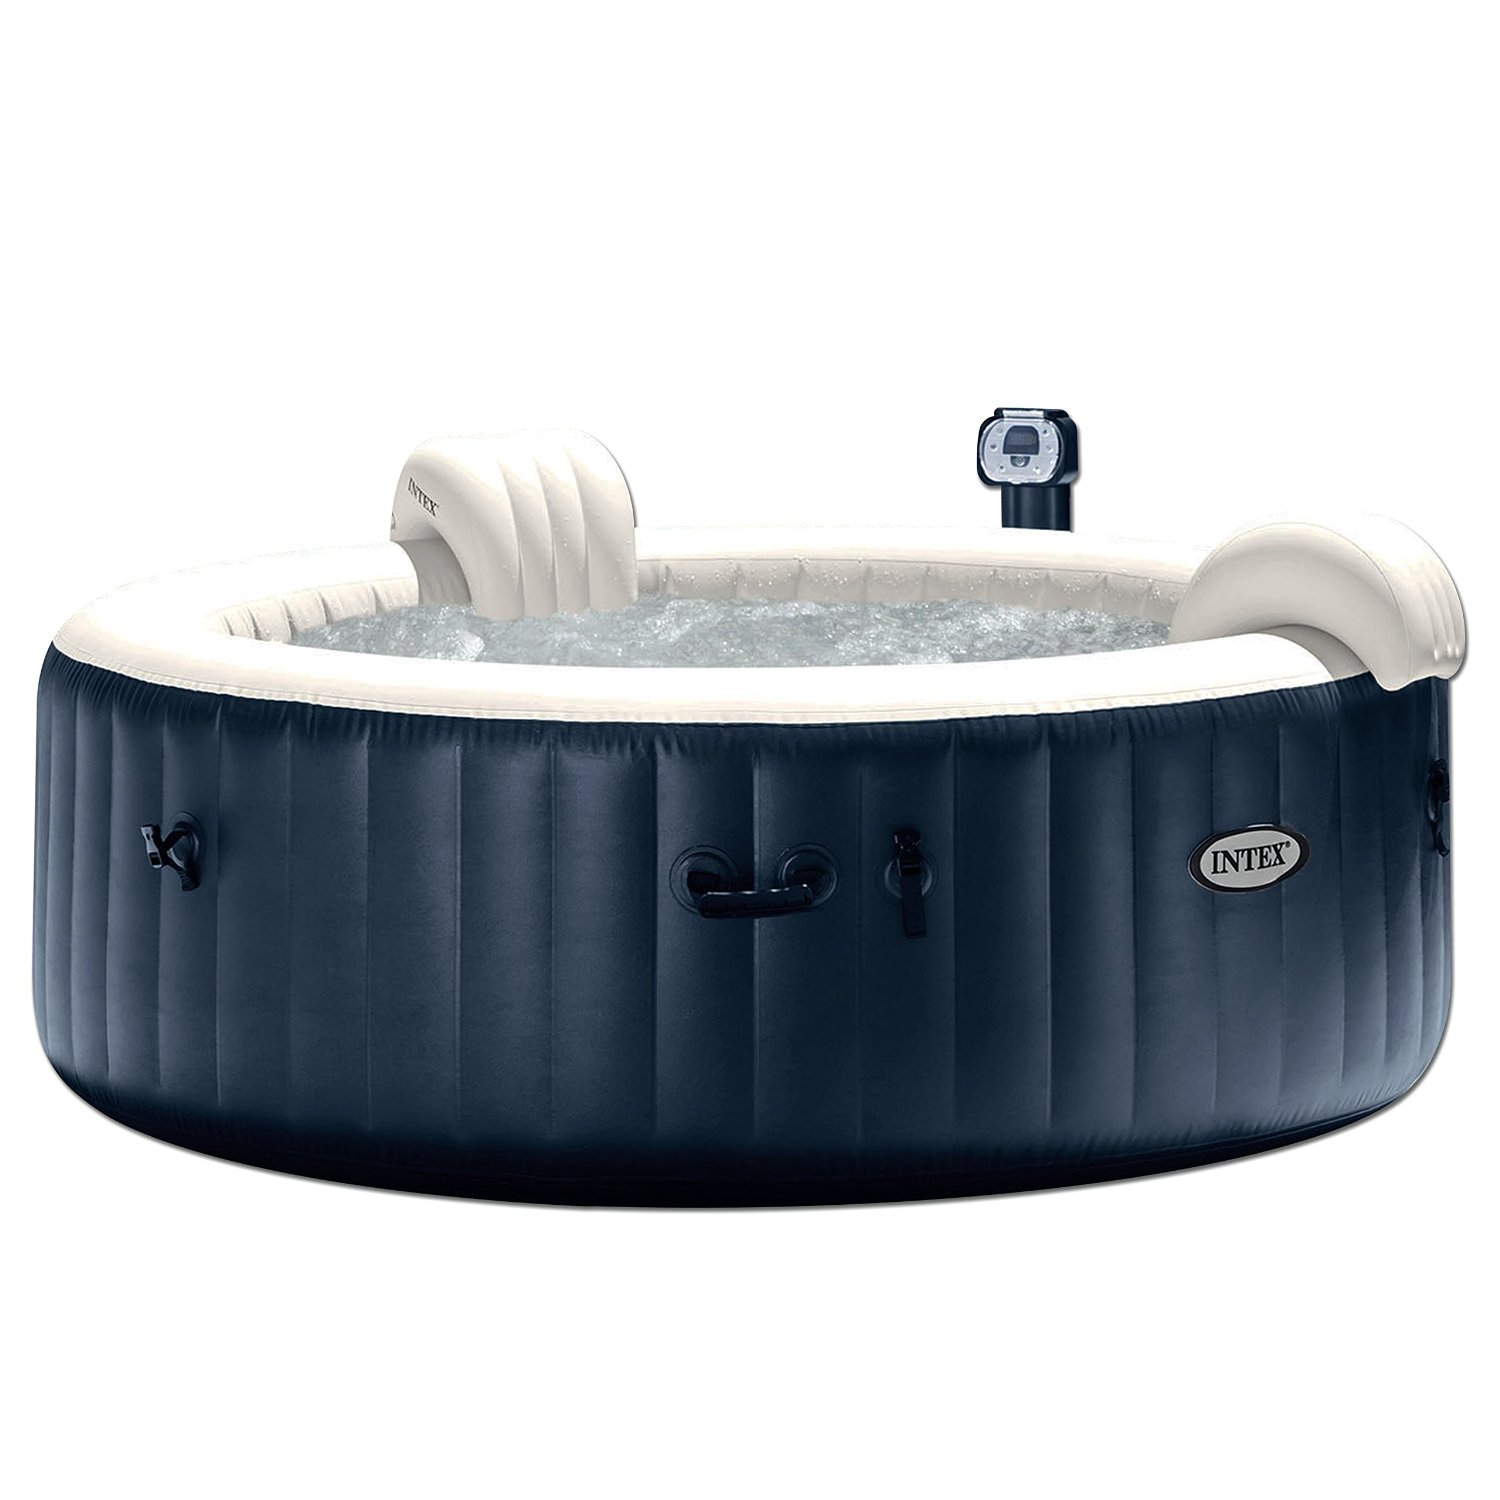 Intex Vs Bestway Review Top 10 Best Inflatable Hot Tub Reviews 2019 Choice